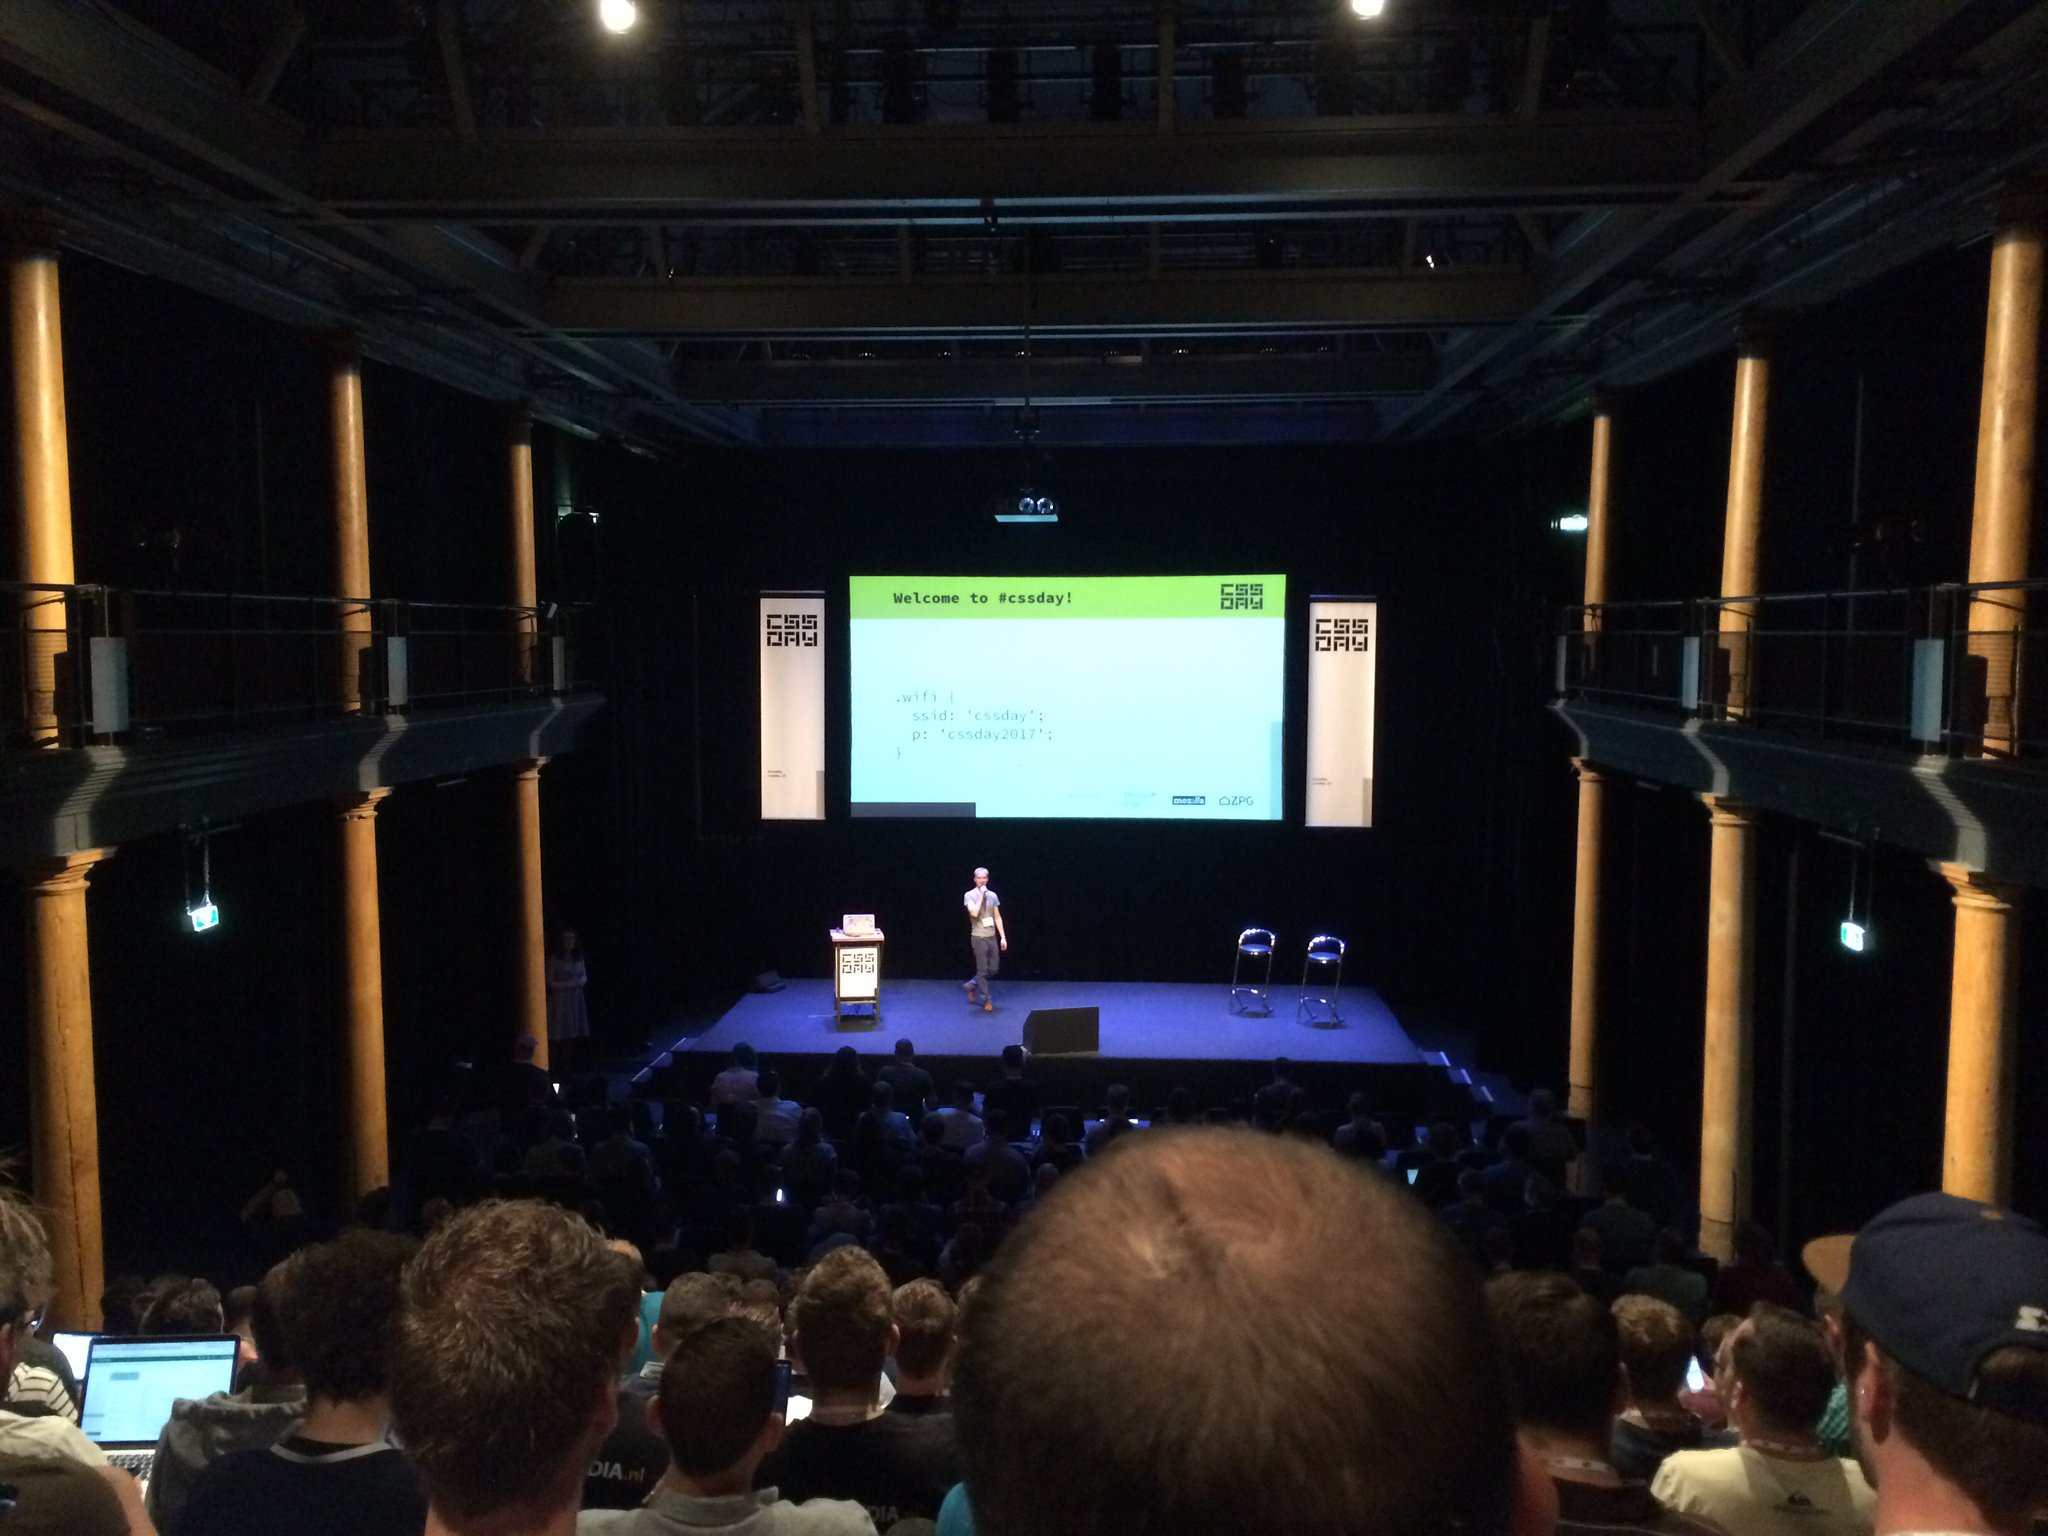 There is more frontend development knowledge in this room that you can shake a stick at! 🤓 #cssday https://t.co/ZzgyYaw8id